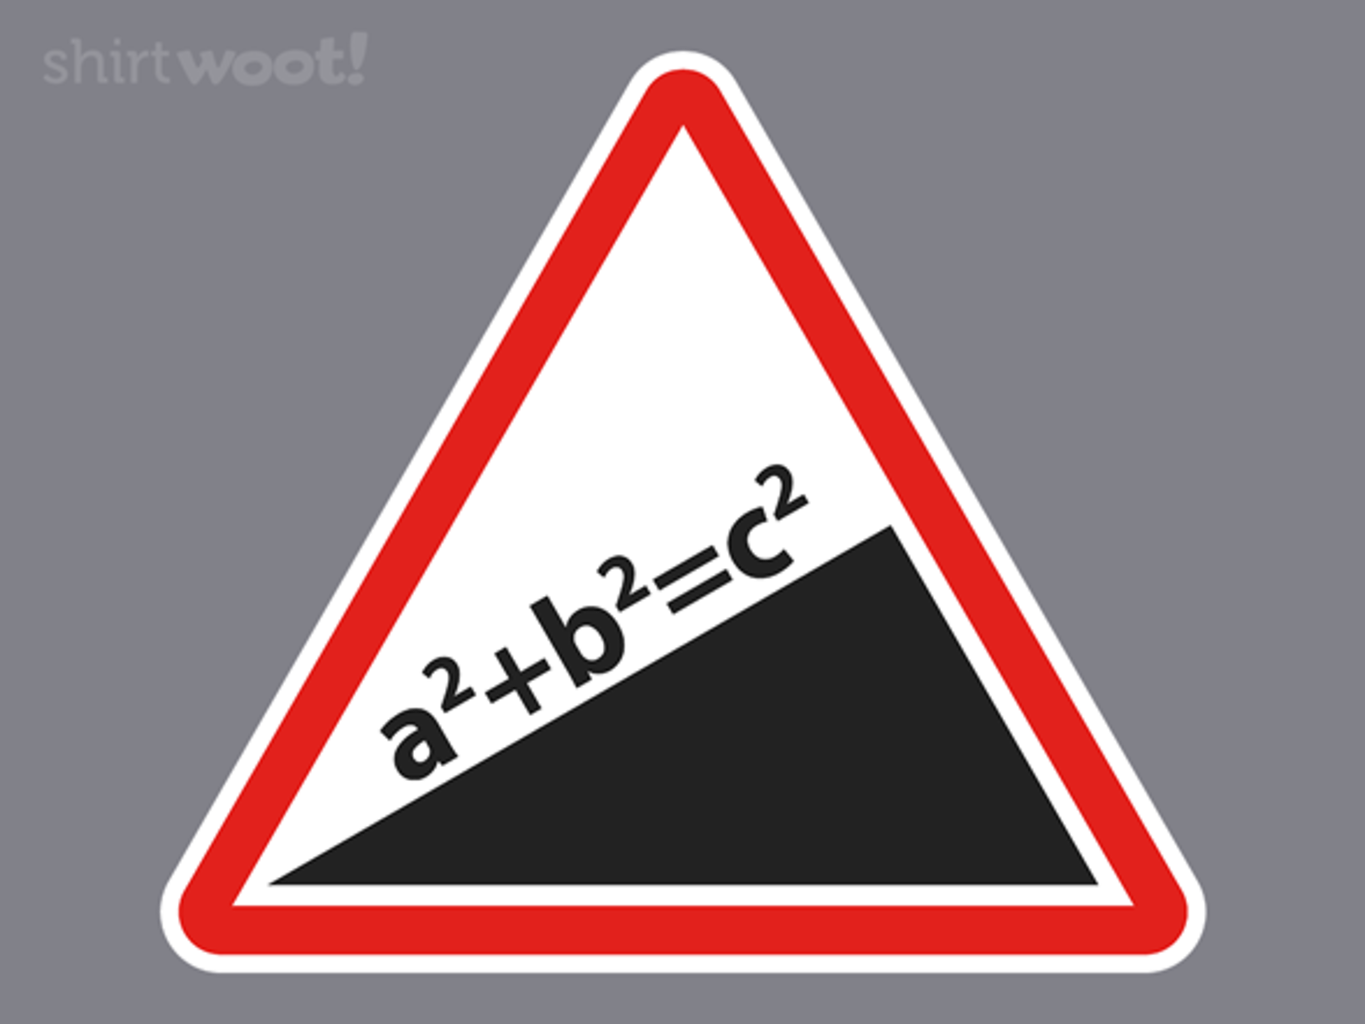 Woot!: Pythagorean Theorem